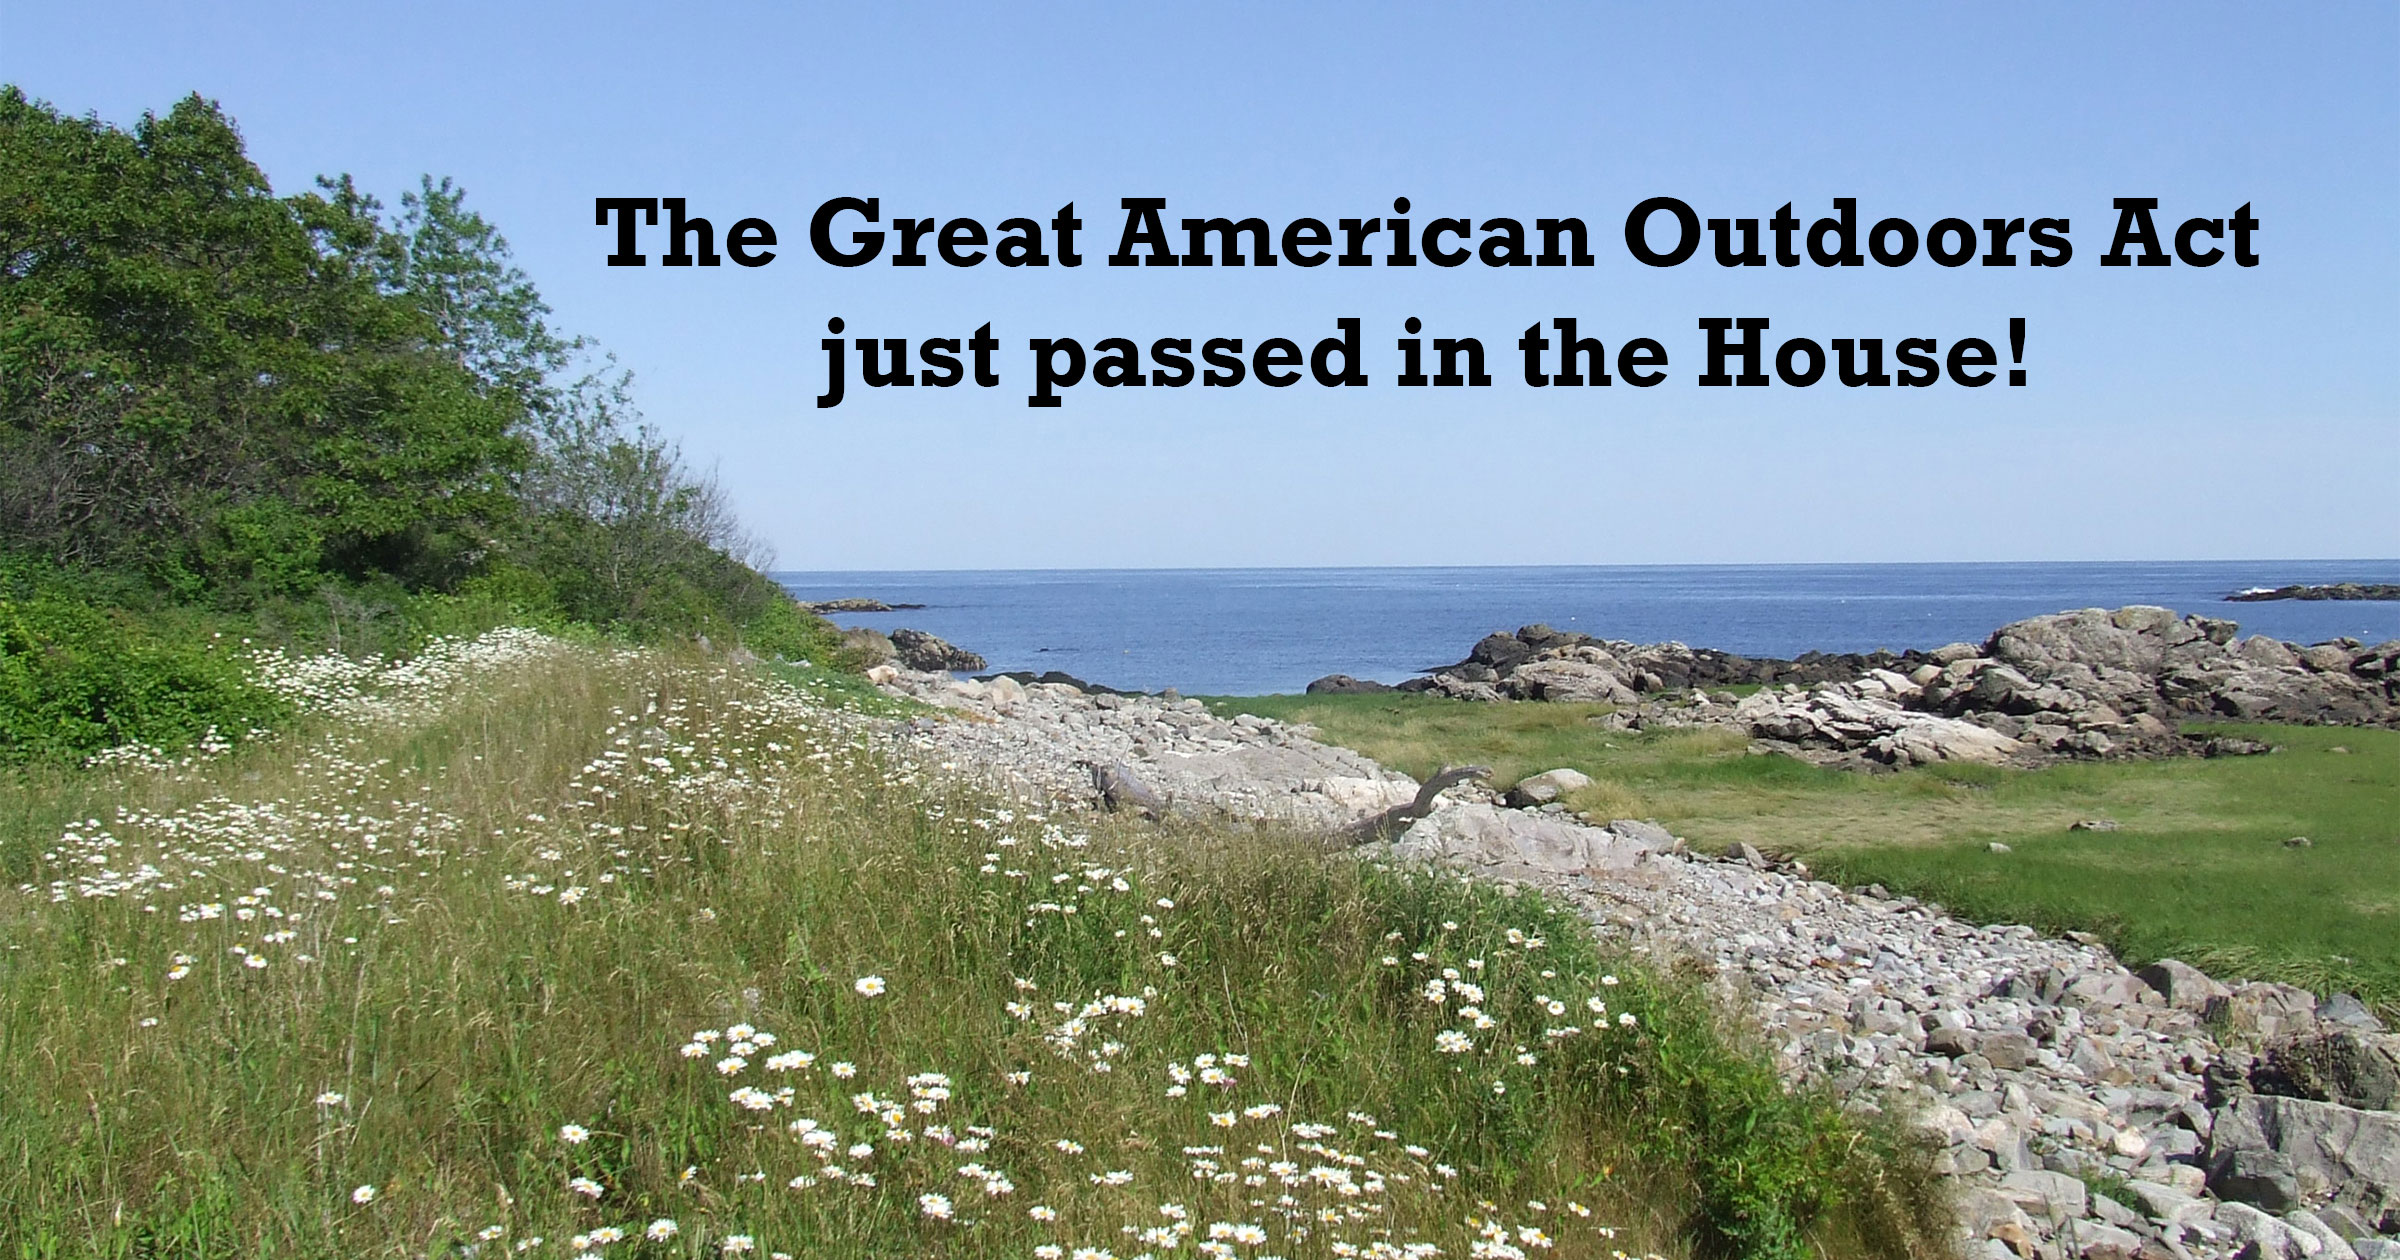 House passes Great American Outdoors Act!